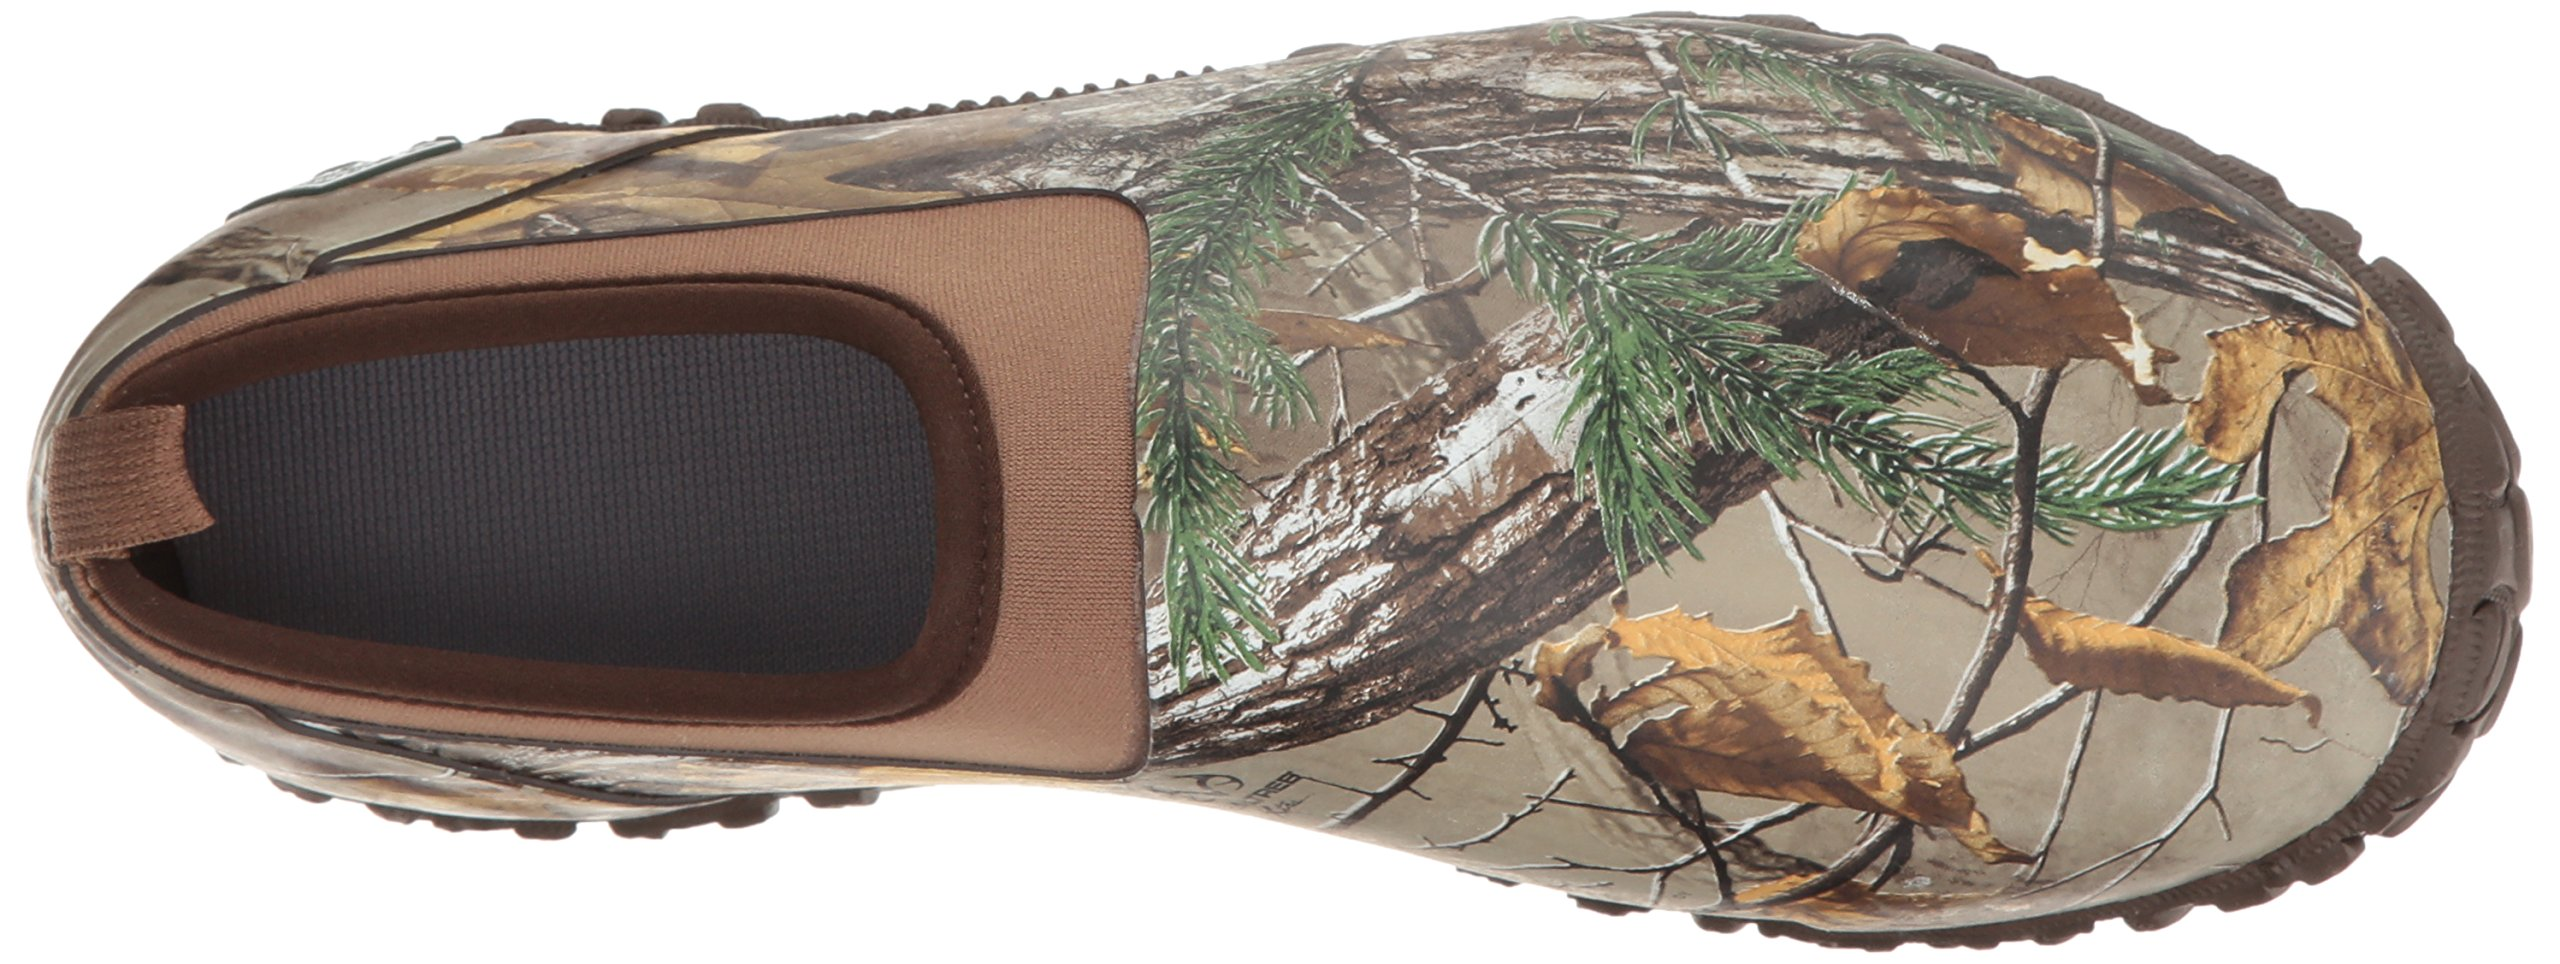 Muckster ll Men's Rubber Garden Shoes,Realtree XTRA,7 US/7-7.5 M US by Muck Boot (Image #9)